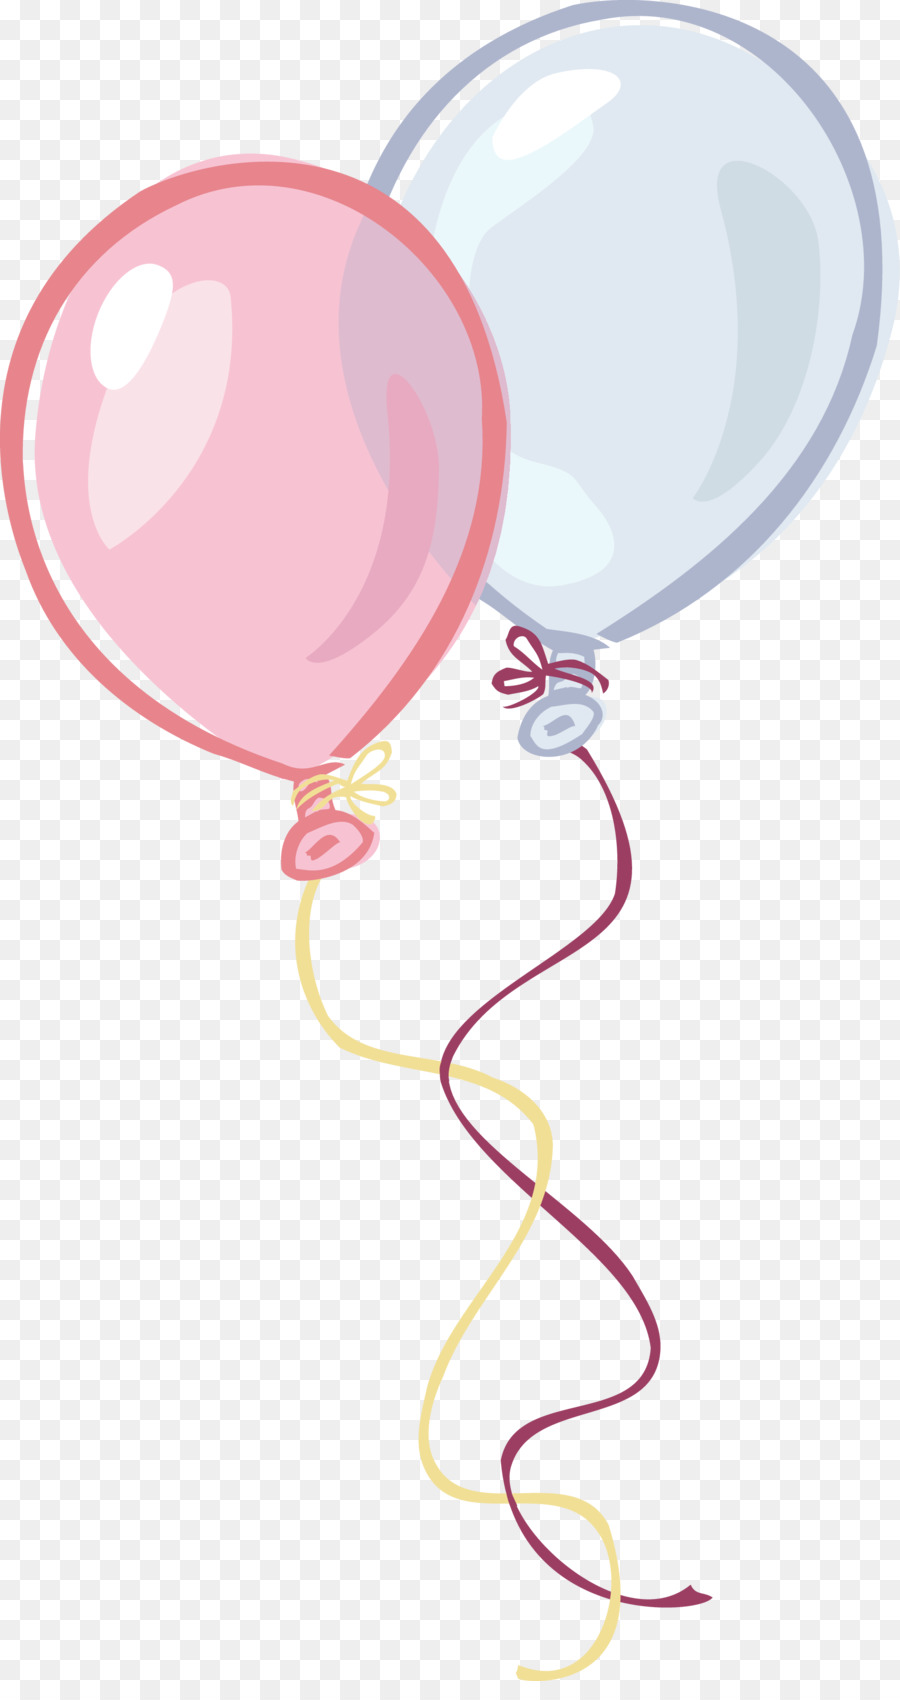 Balloon Birthday Party Clip Art Birthday Balloons Png